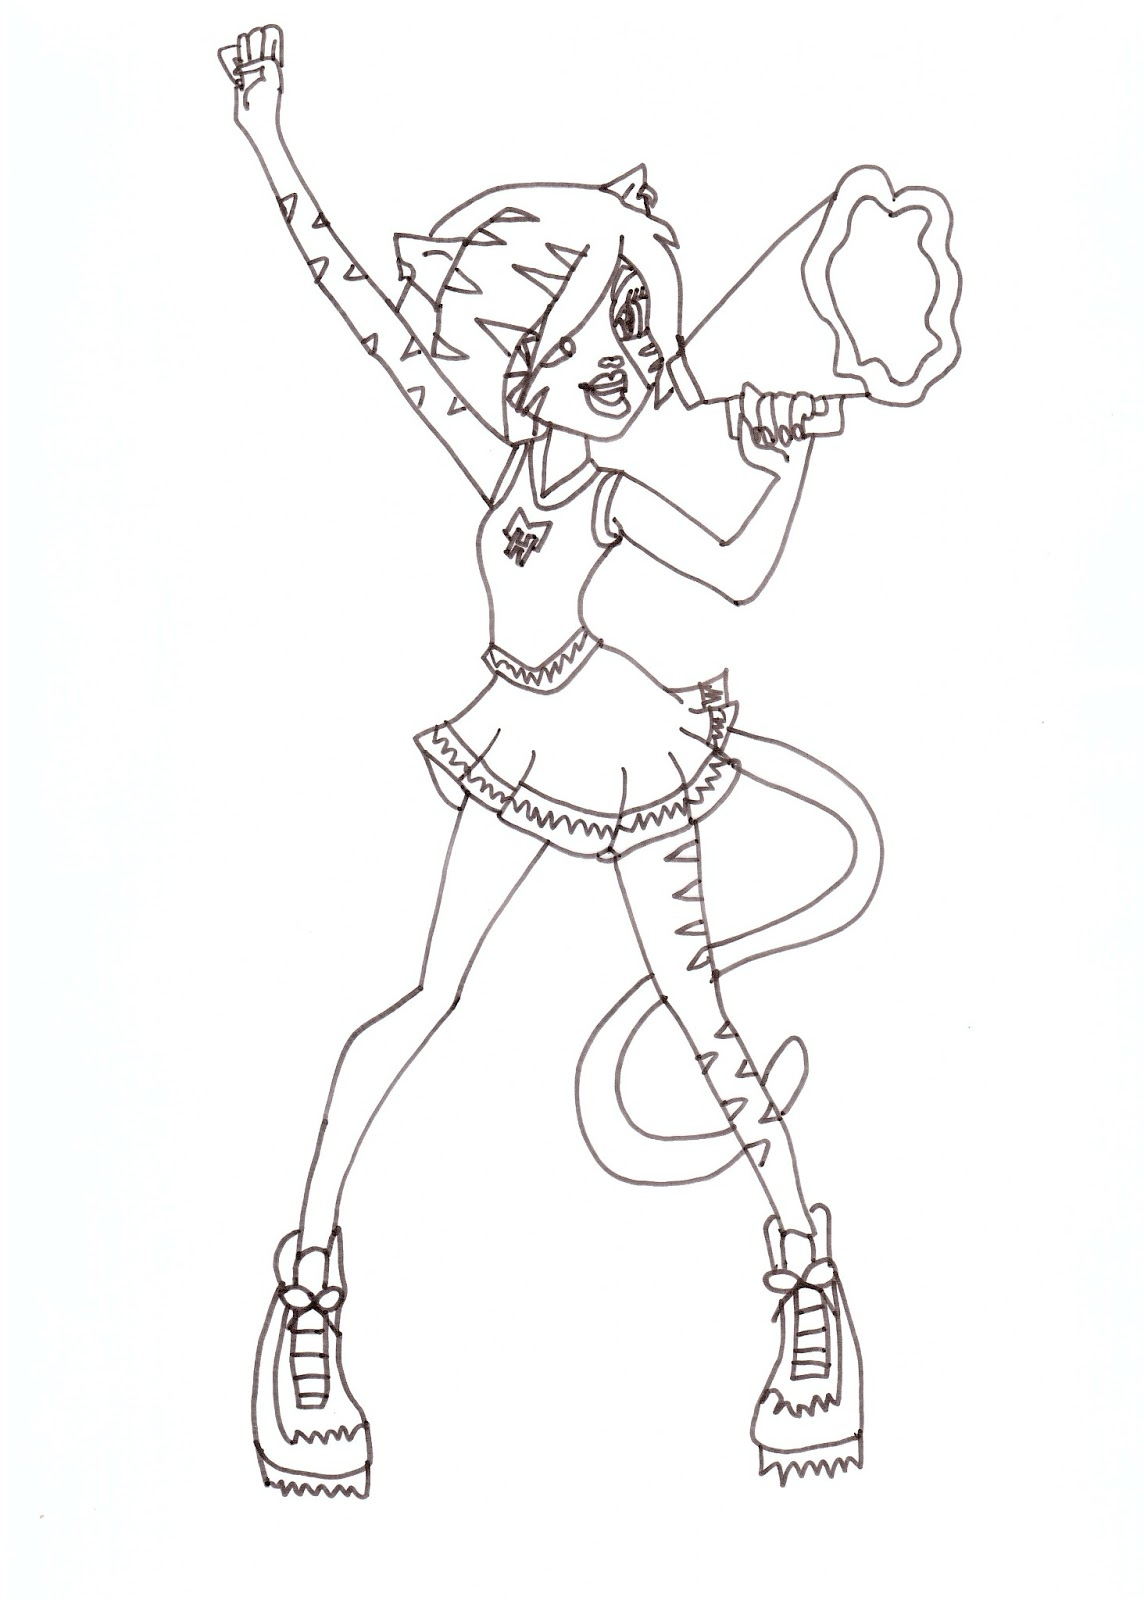 Monster High Printable Coloring Pages Abbey Colorings Download Of Monster High Baby Coloring Pages 012 to Coloring Pages Collection